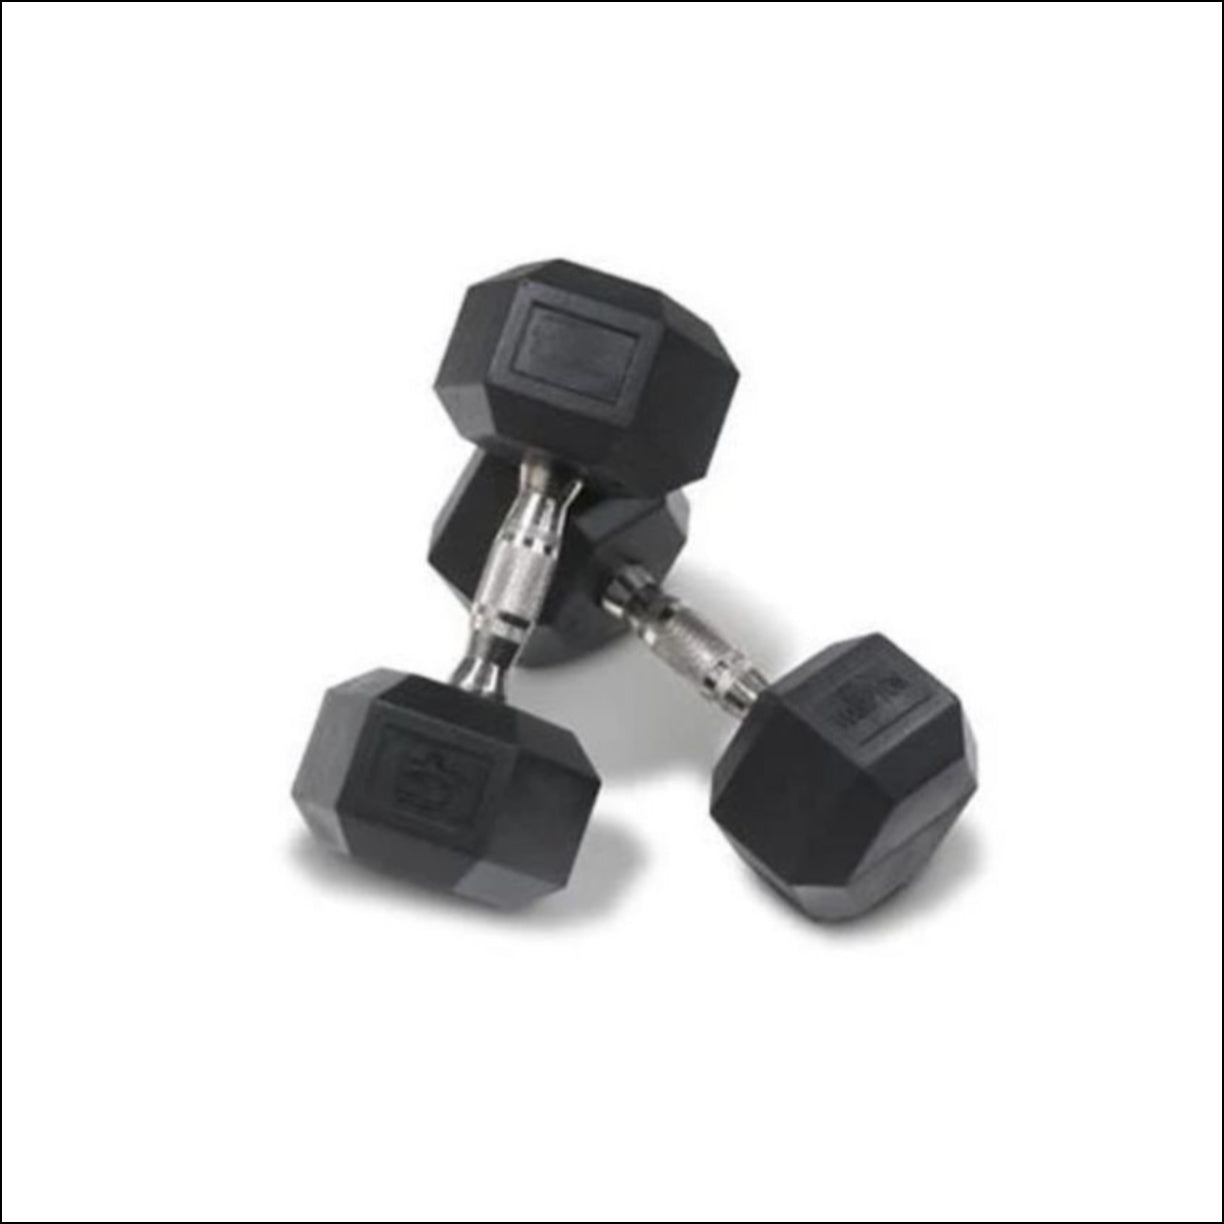 PAIR OF 20-kg RUBBER HEX DUMBBELLS  Muscle Motion Rubber coated hexagonal dumbbells with ergonomic handles are designed for increased comfort and improved durability. Rubber coating reduces noise improves life cycle of the product  (other finishes such as chrome and cast iron are subject to chipping and rust). Rubber coated dumbbells are also kinder on floor surfaces. The hexagonal shaped ends are designed to prevent the dumbbell from rolling on the floor or dumbbell rack.